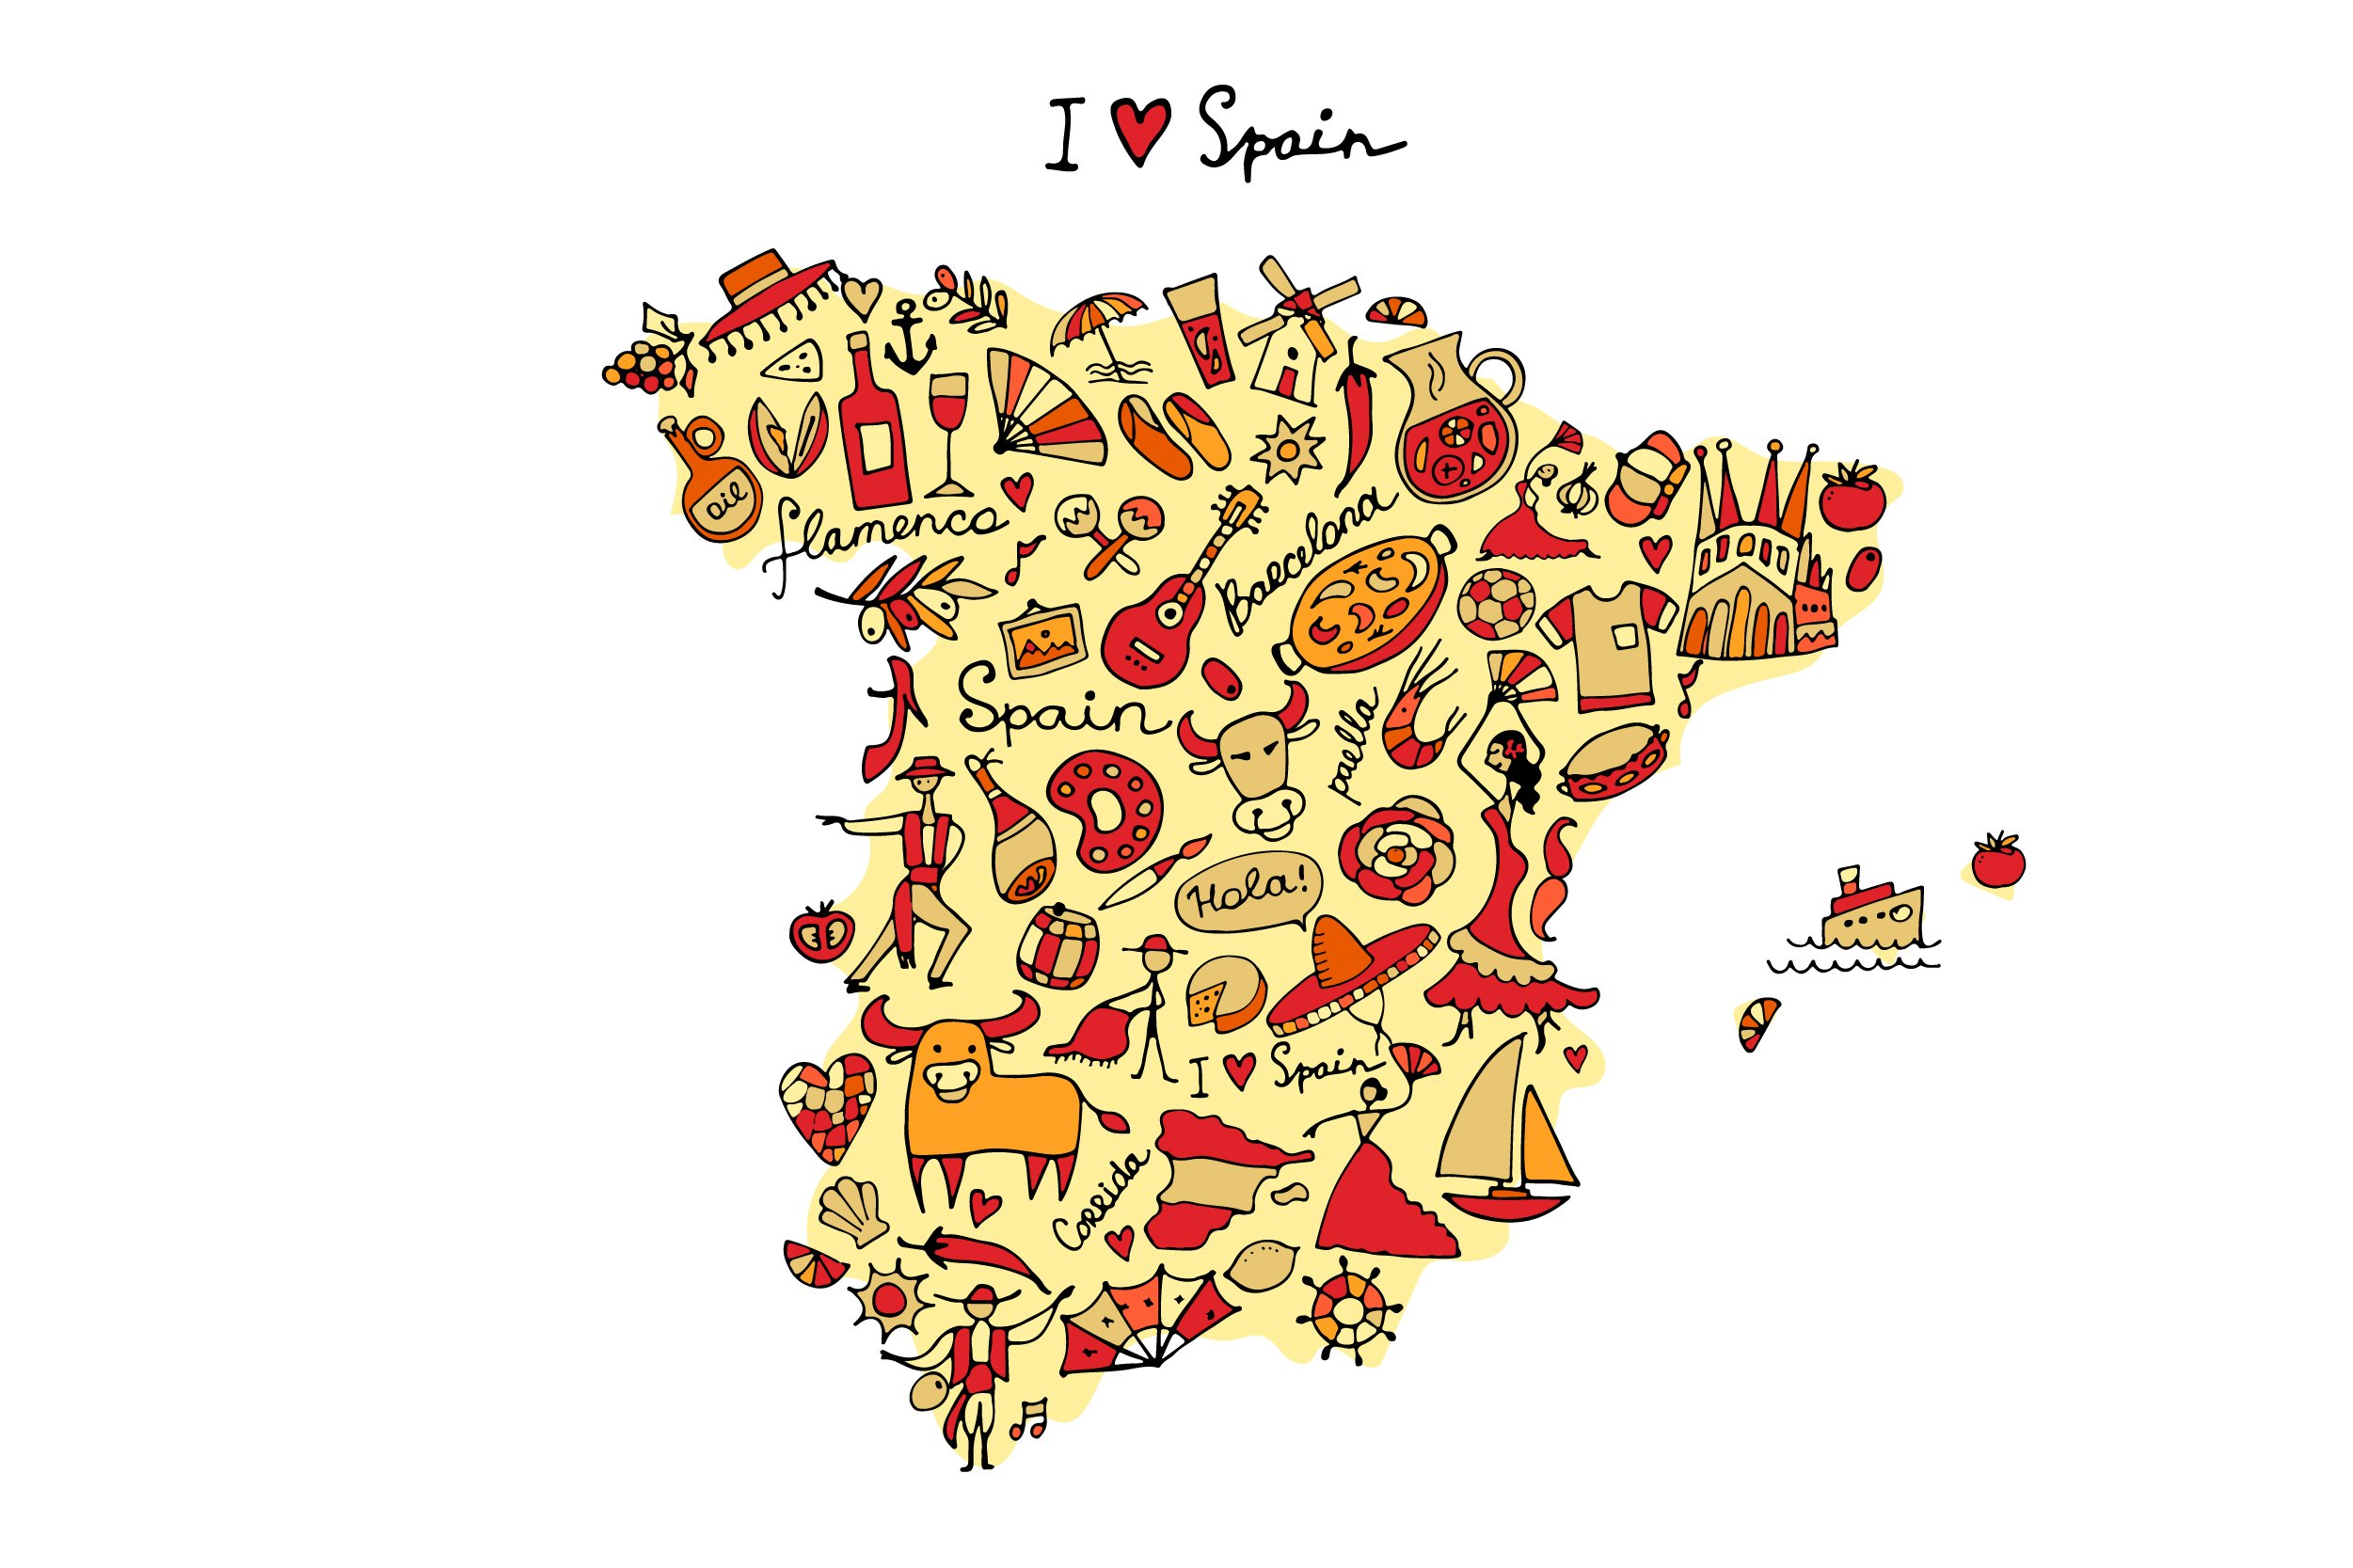 Spain set in one style - tree, pattern, heart, frame example image 4